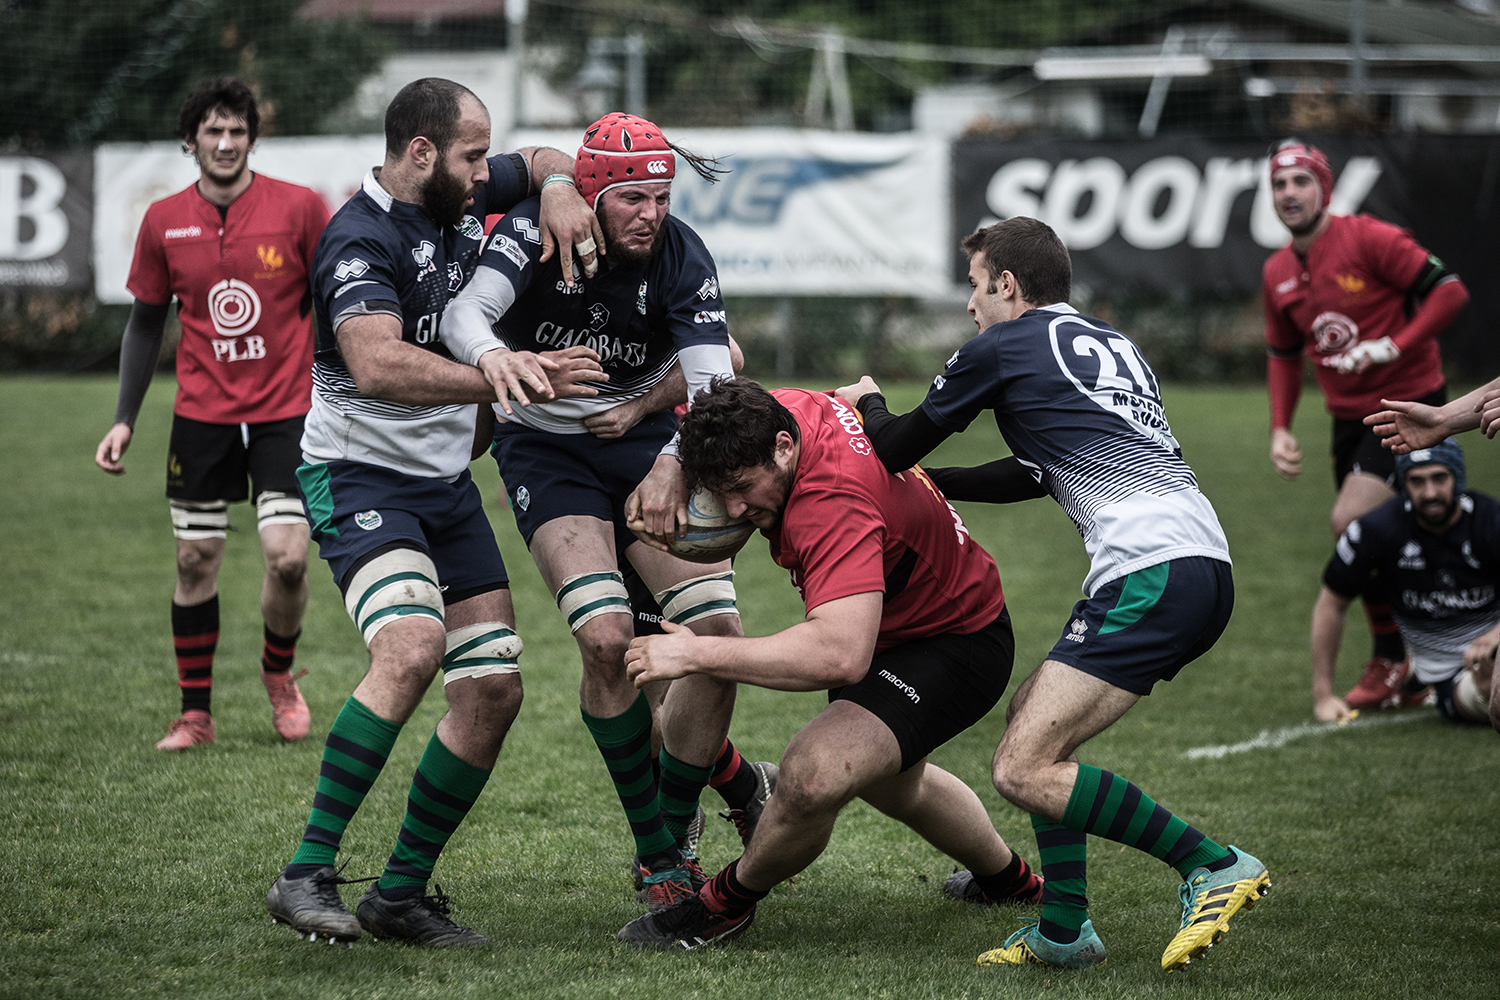 rugby_photograph_39.jpg